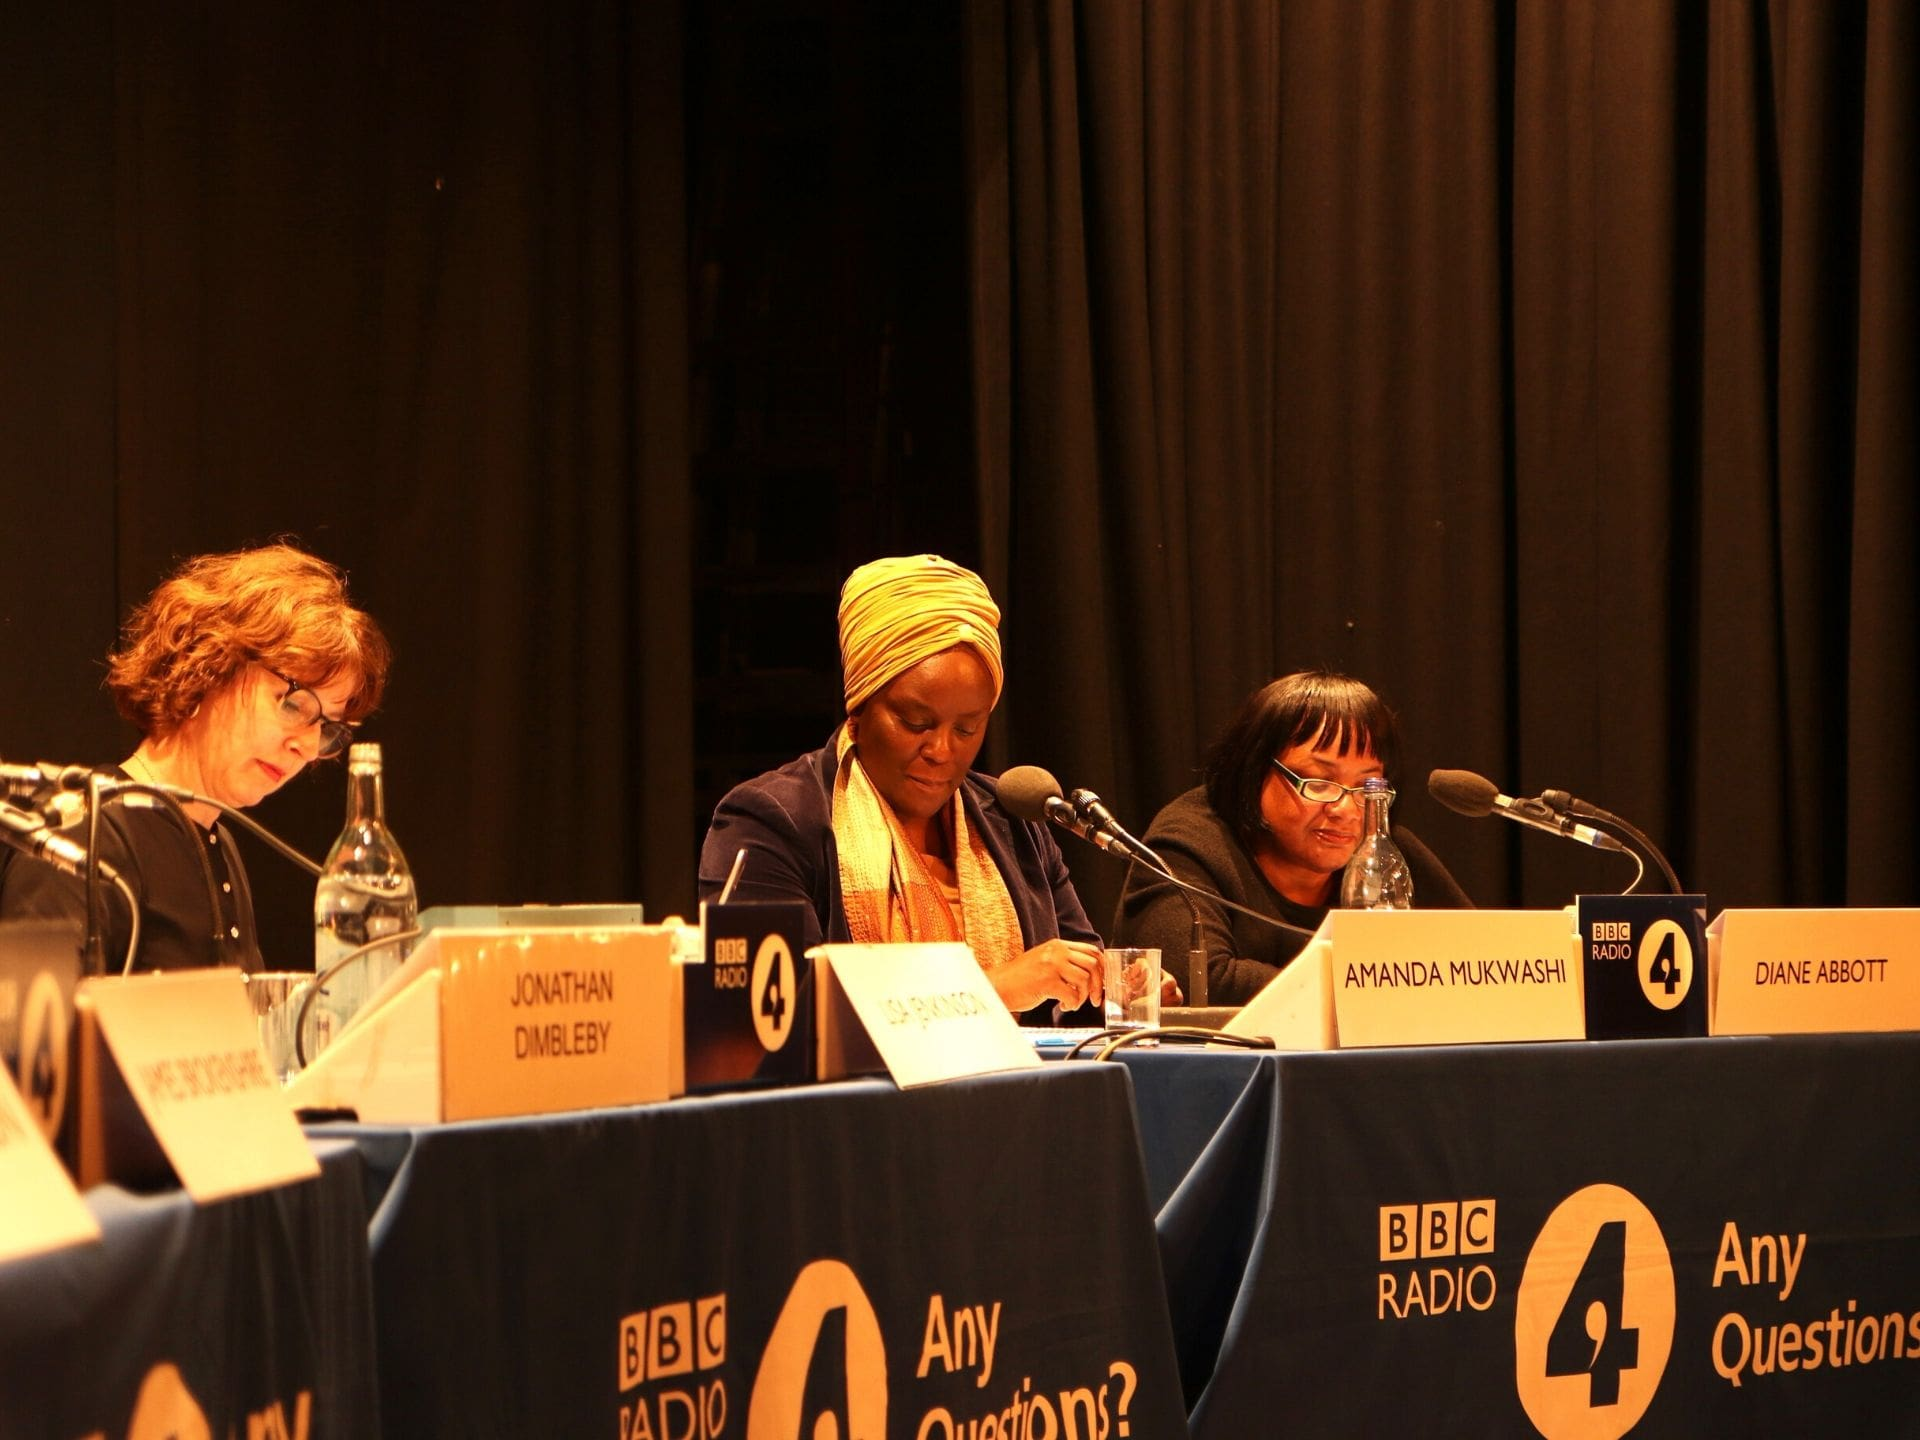 A panel discussion for Radio 4